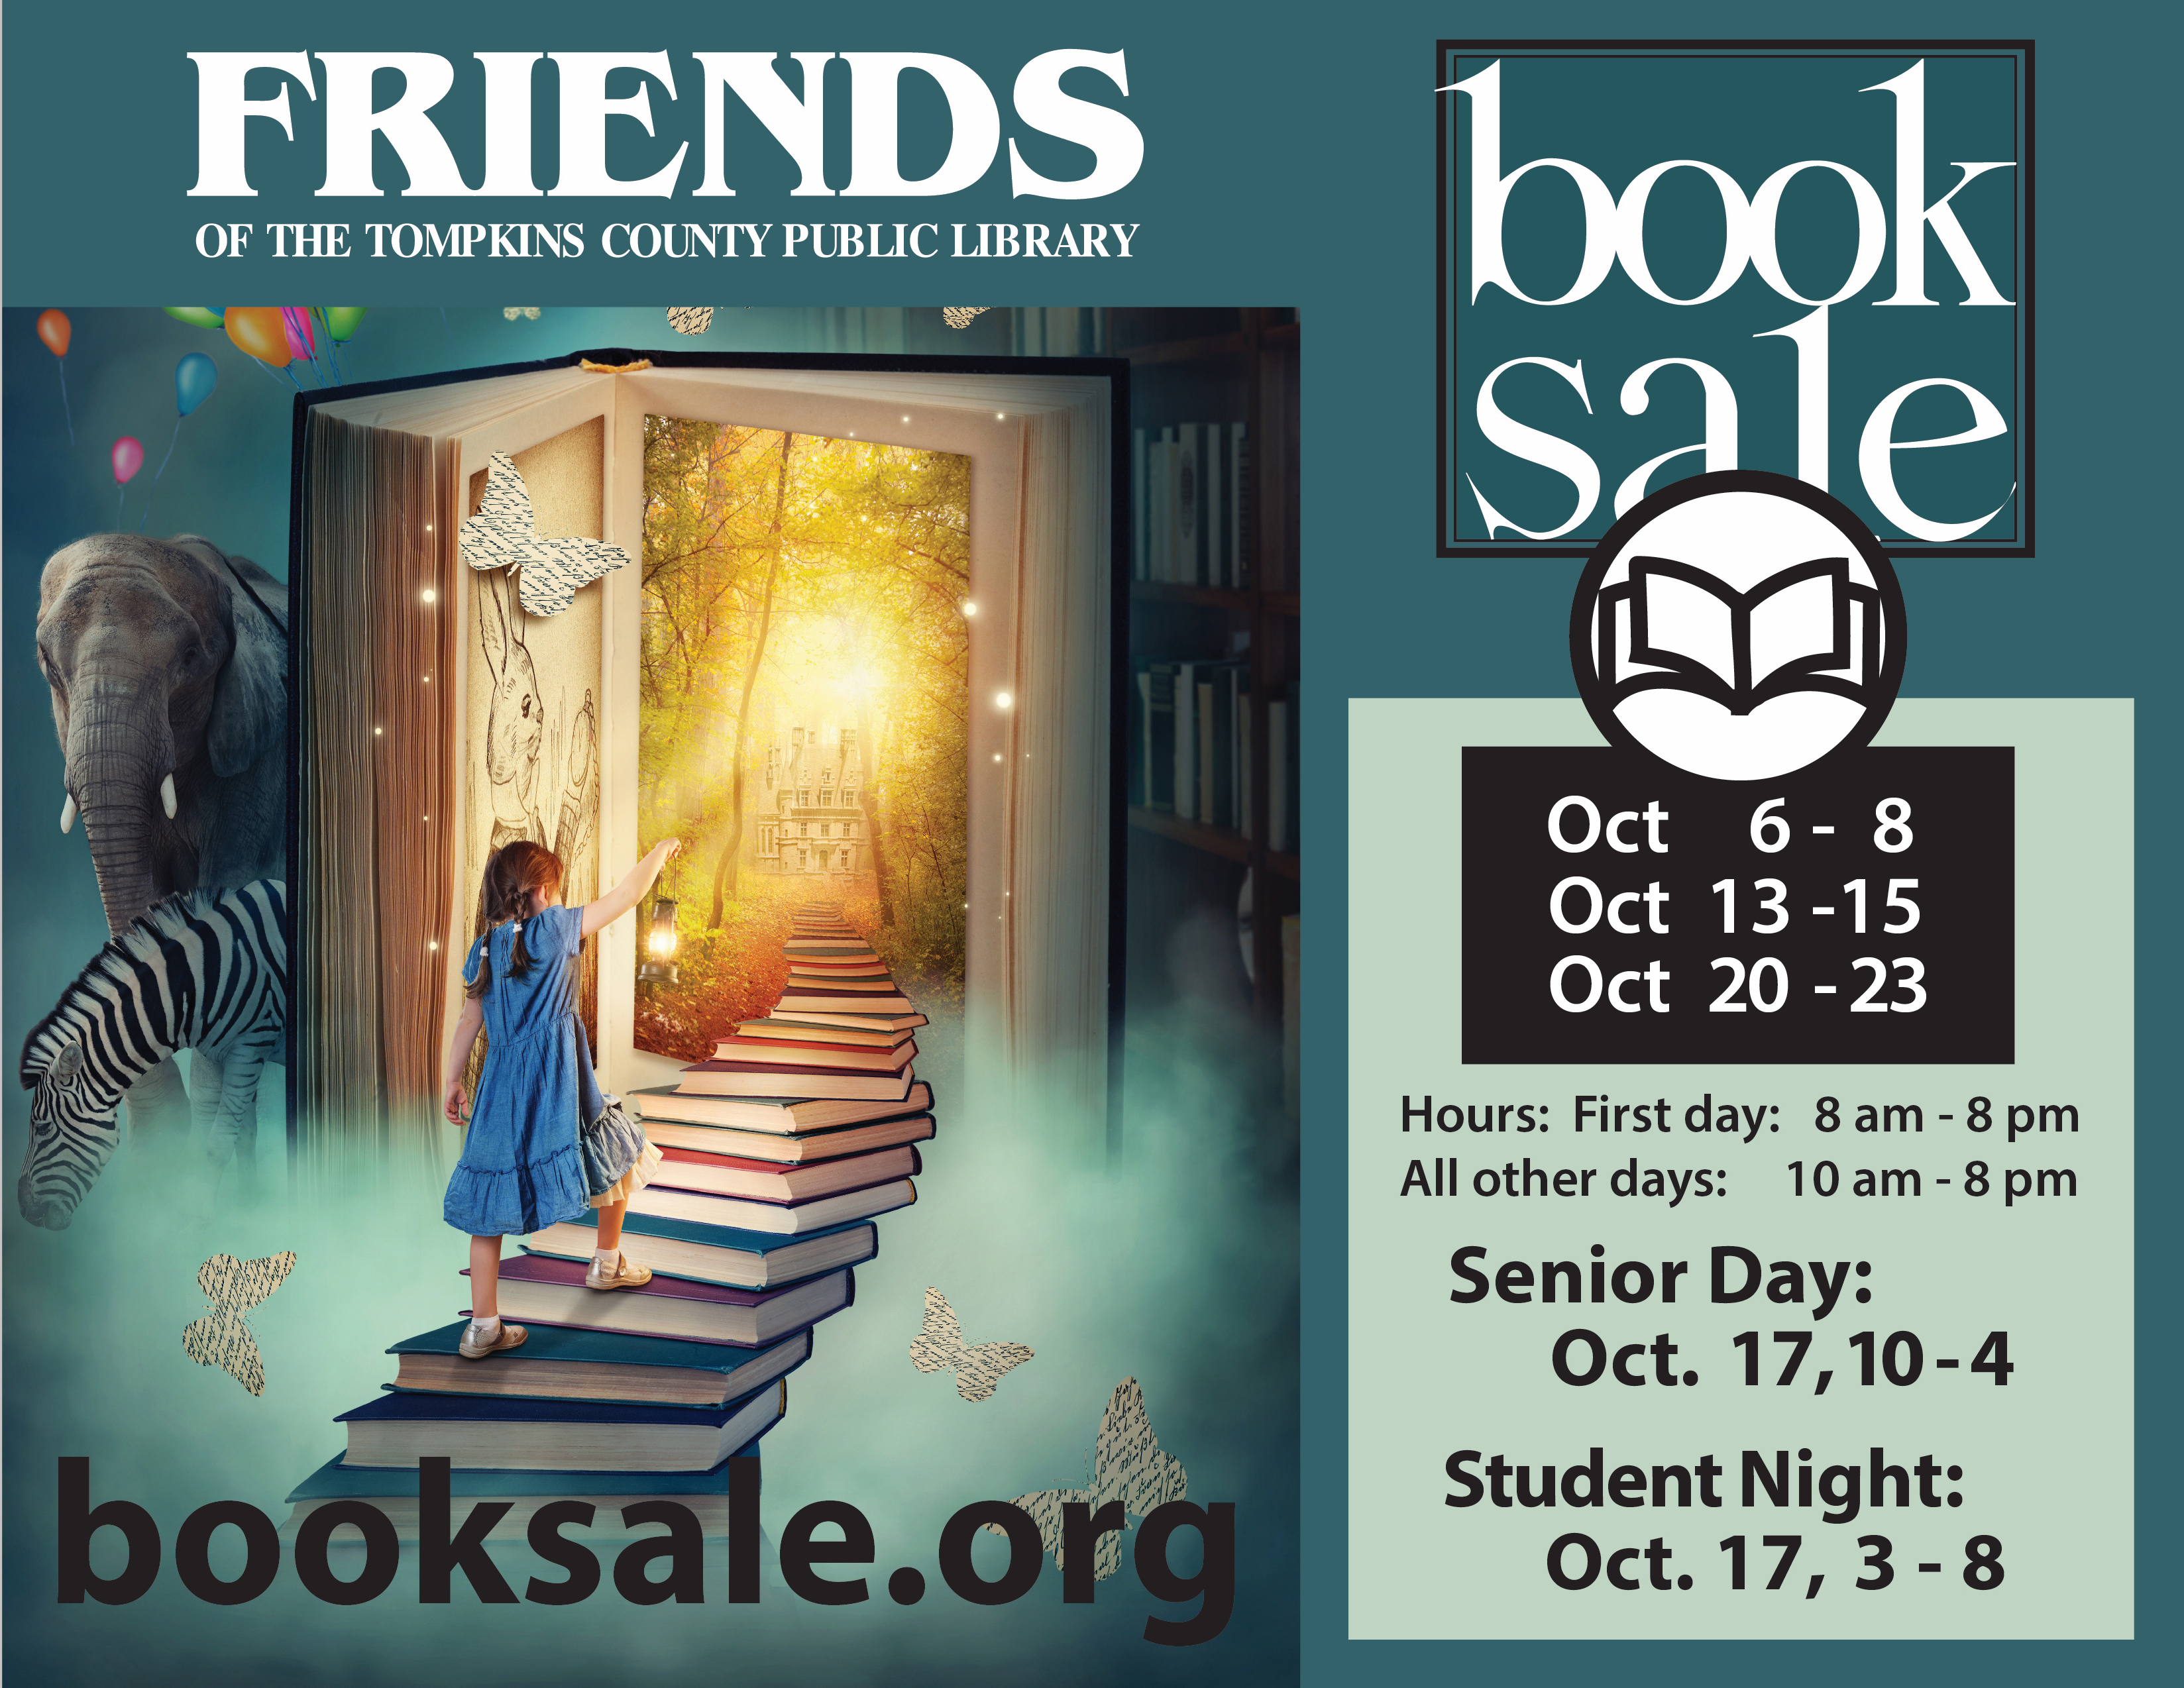 Friends Book Sale poster featuring image of young girl walking up a stack of books